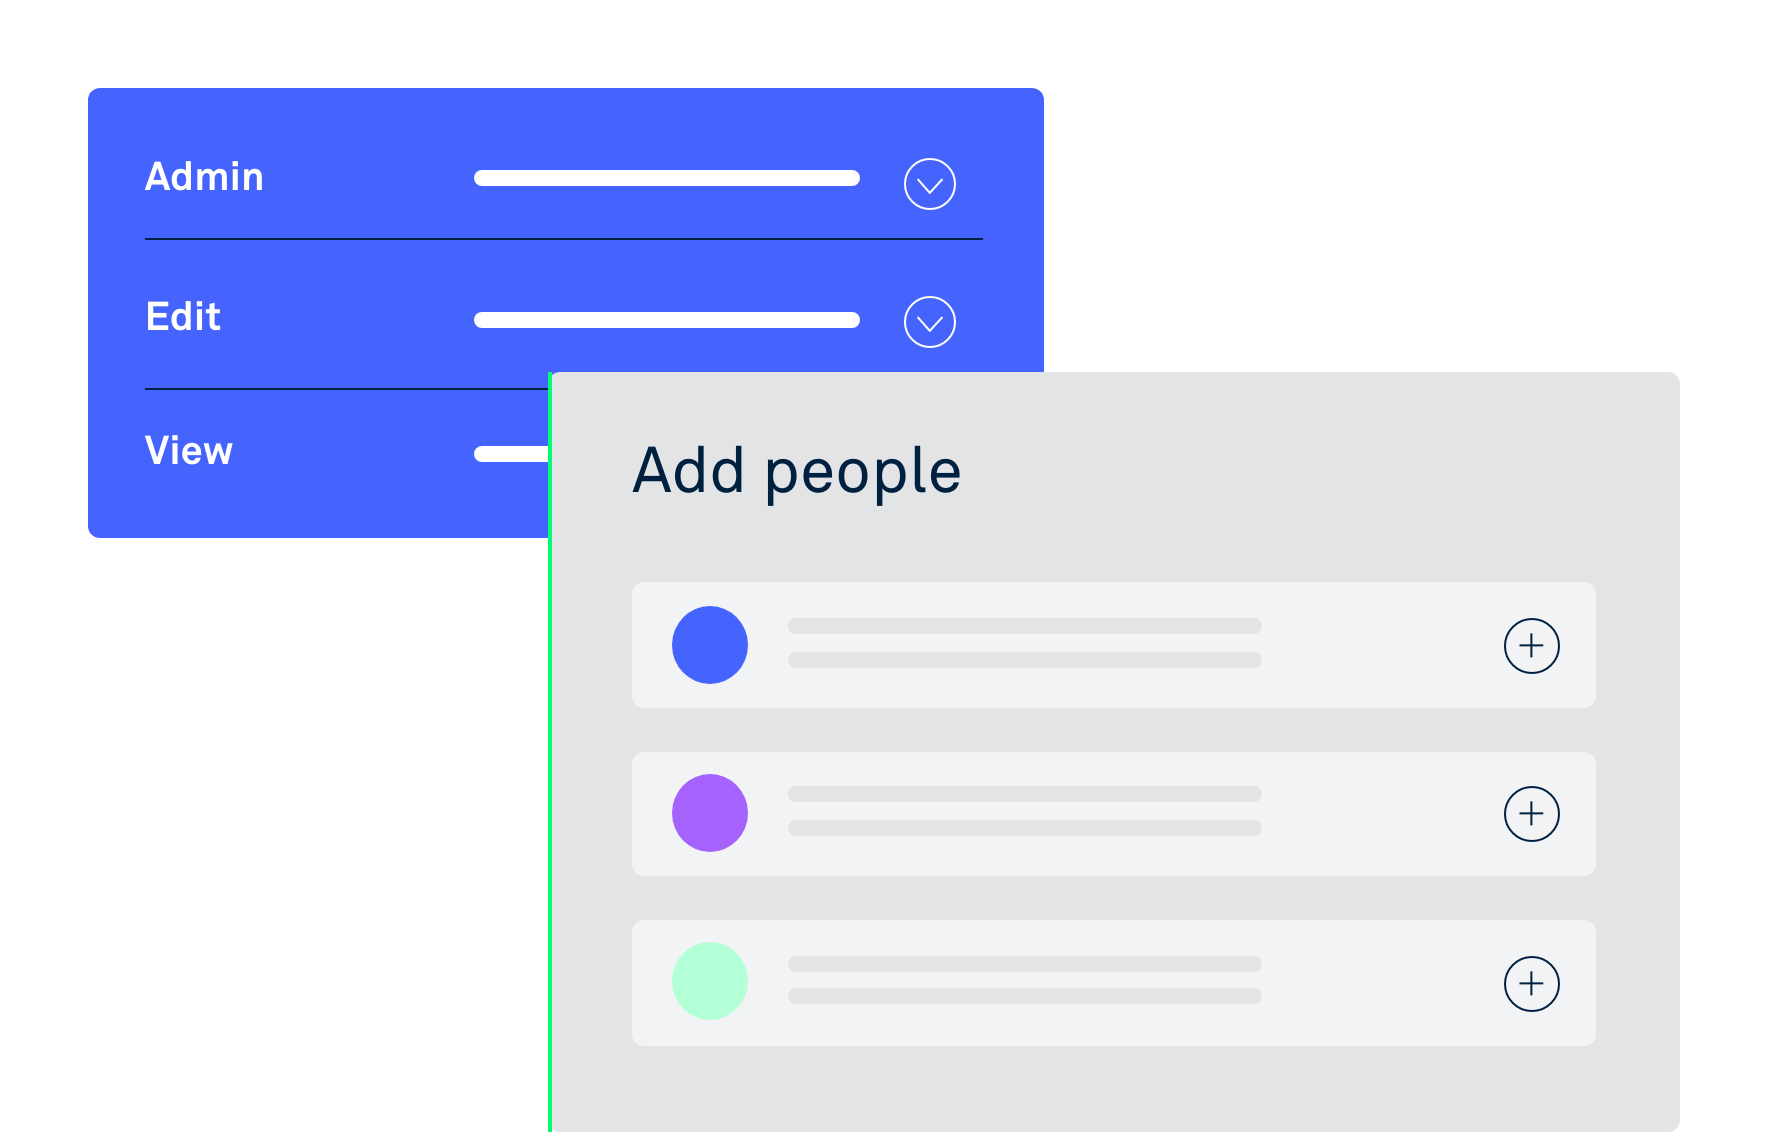 Adding new people into a timeline in Clarify